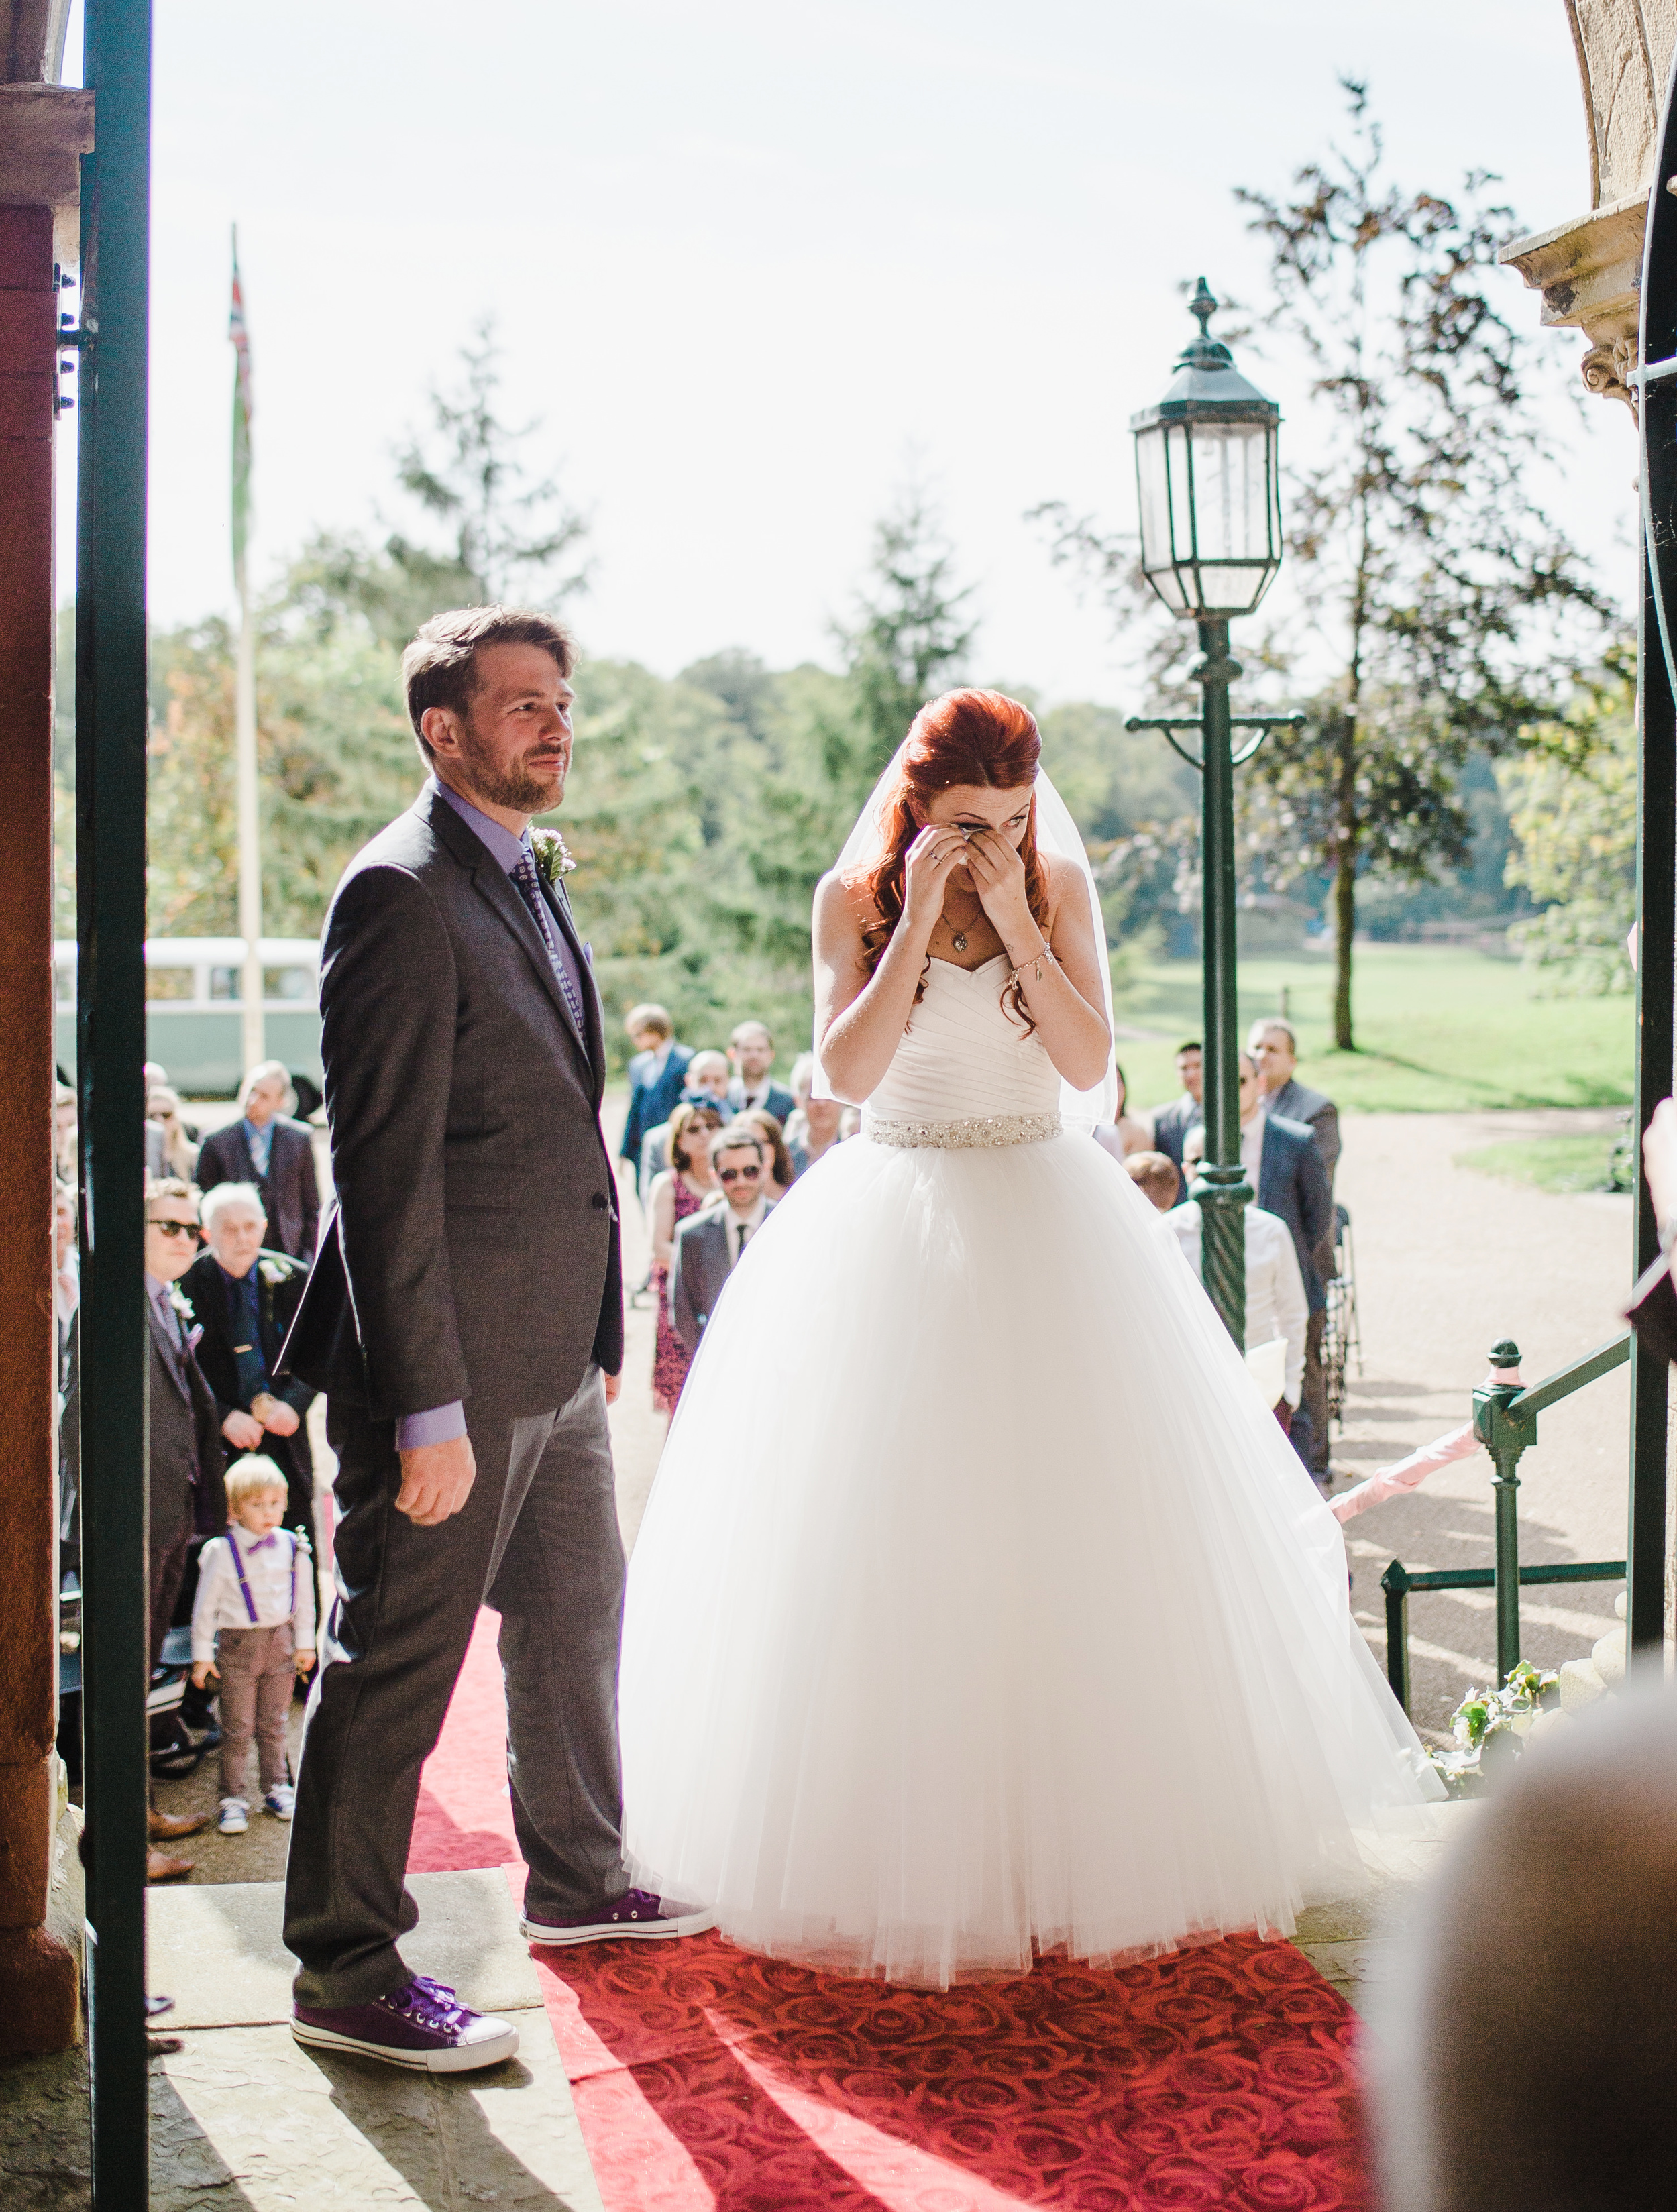 Lancashire wedding photographer - outdoor wedding ceremony Avenham Park